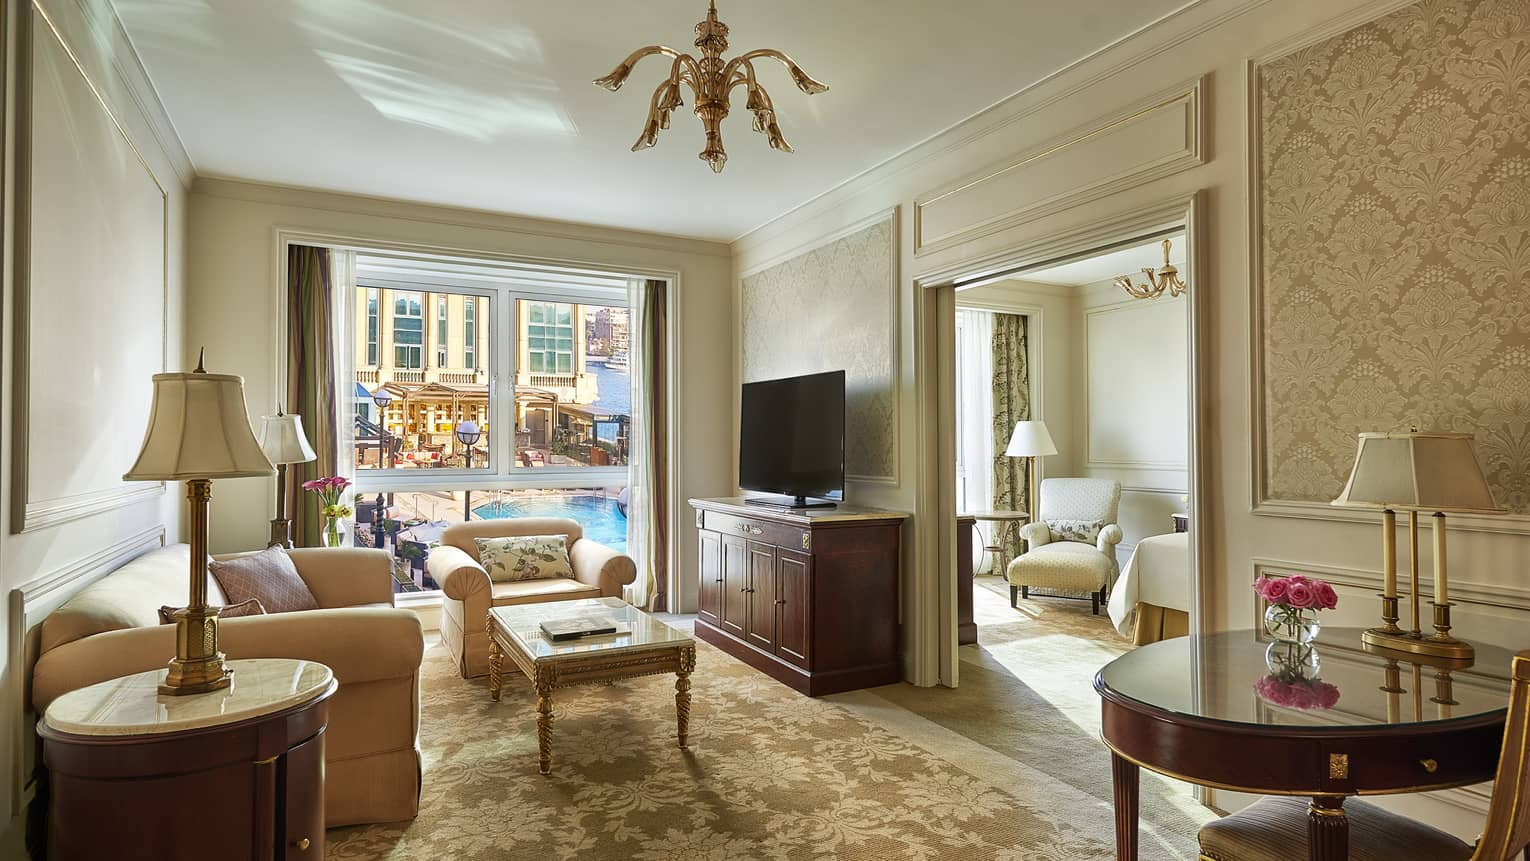 Four Seasons Executive Suite living room with plush sofa, armchairs, window overlooking patio, pool